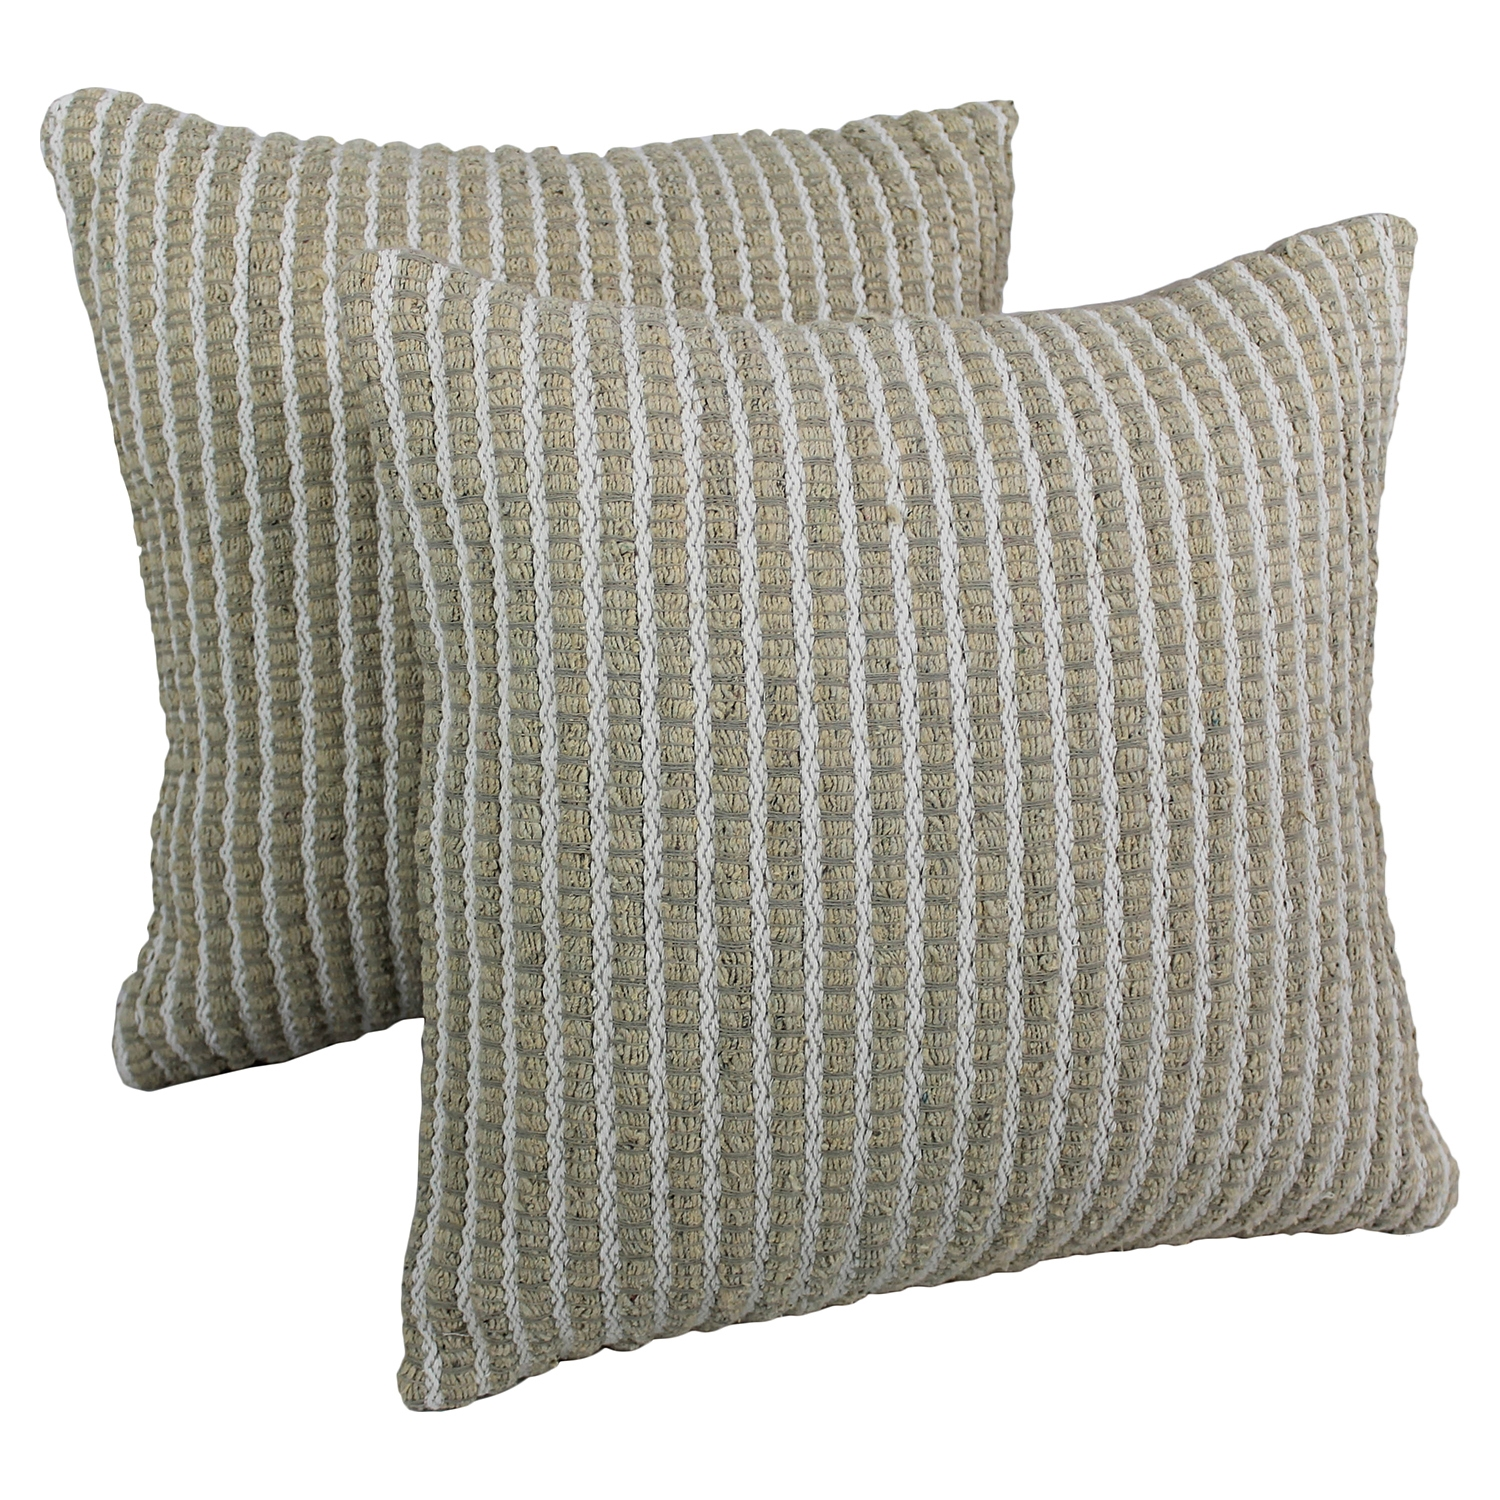 Woven Look Rope Corded Pillows in White and Beige (Set of 2) - BLZ-IE-20-WOV-RP-1-S2